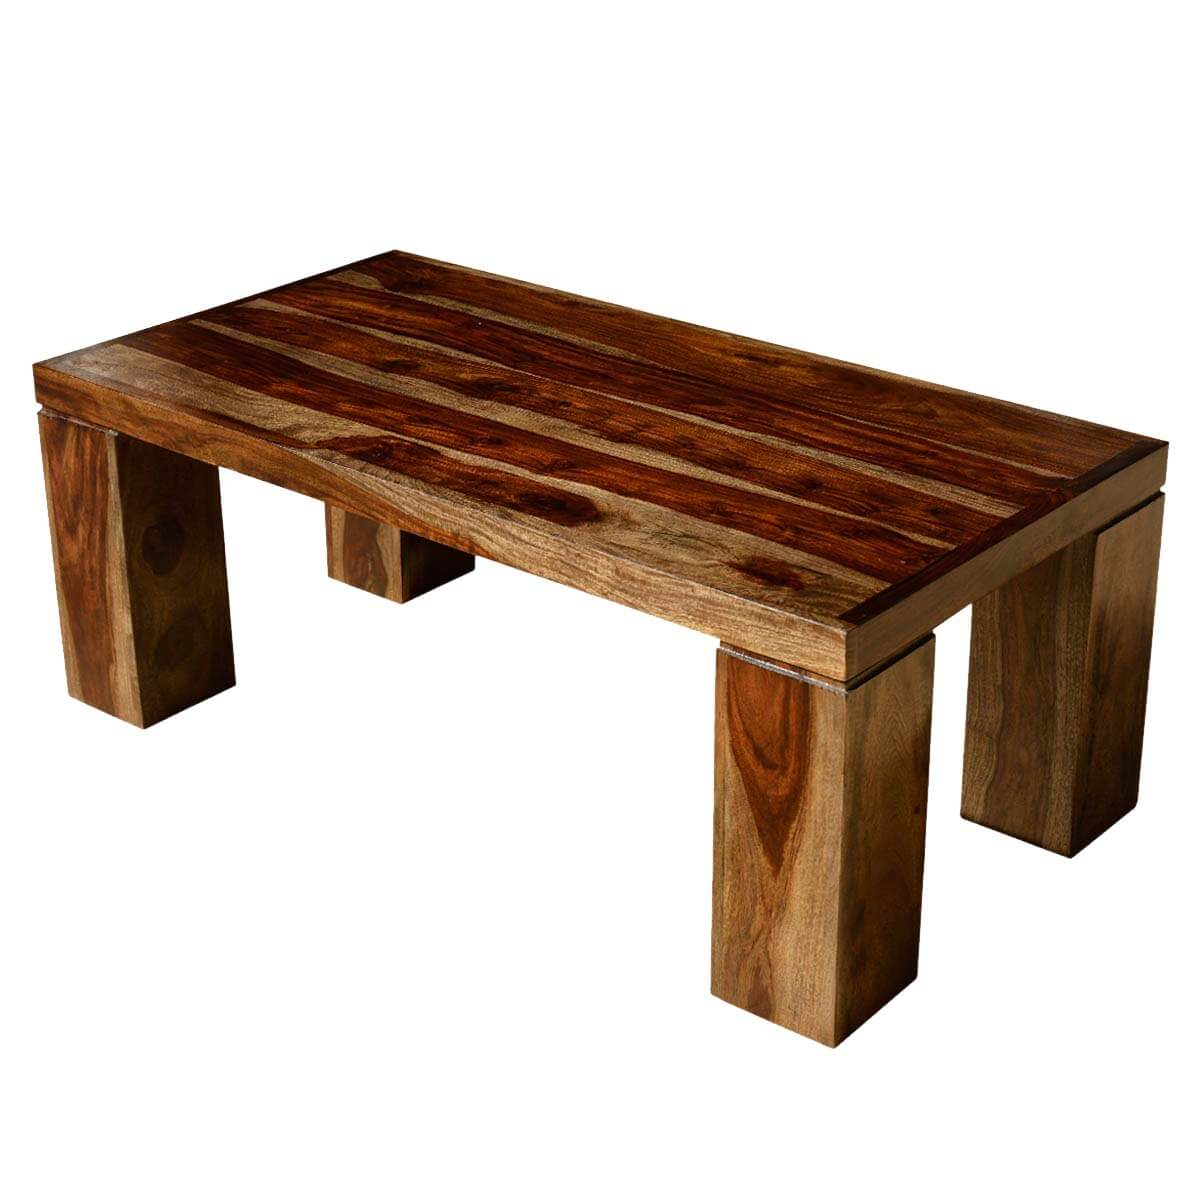 Contemporary Indian Rosewood Espresso Coffee Table w Block Legs. Contemporary Solid Wood Espresso Coffee Table w Block Legs